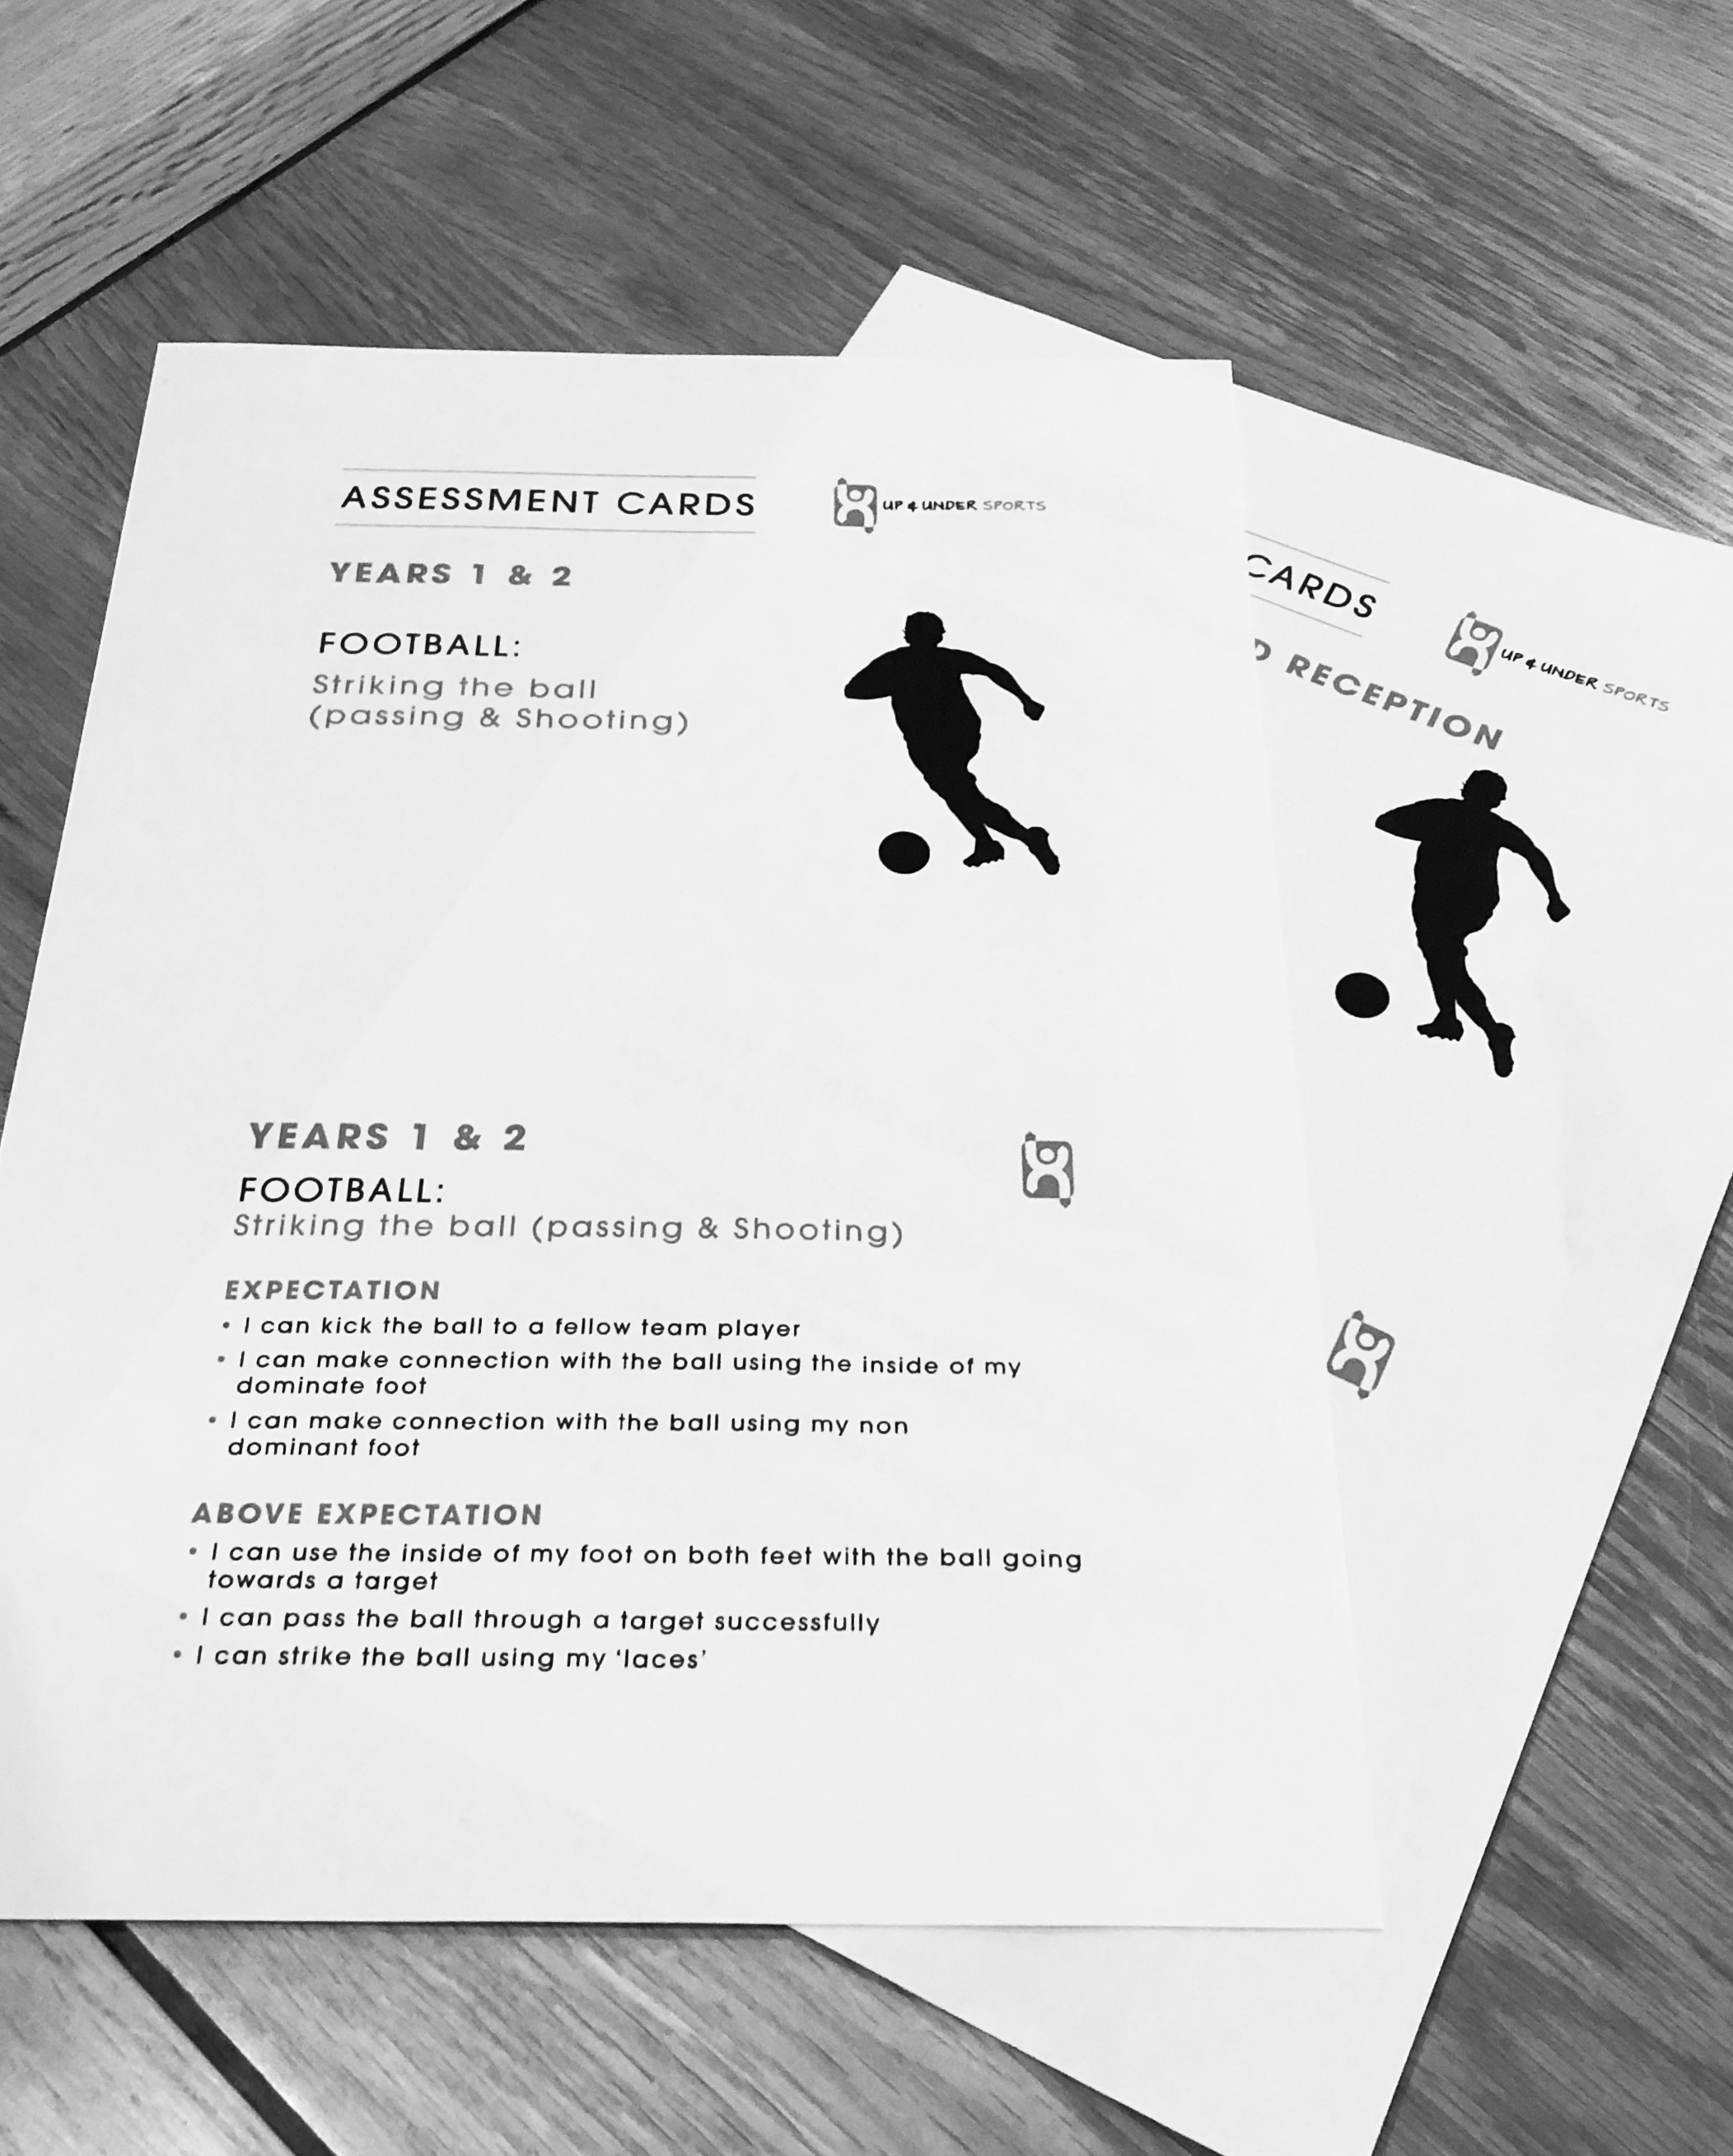 New to Up & Under Sports – Assessment Cards